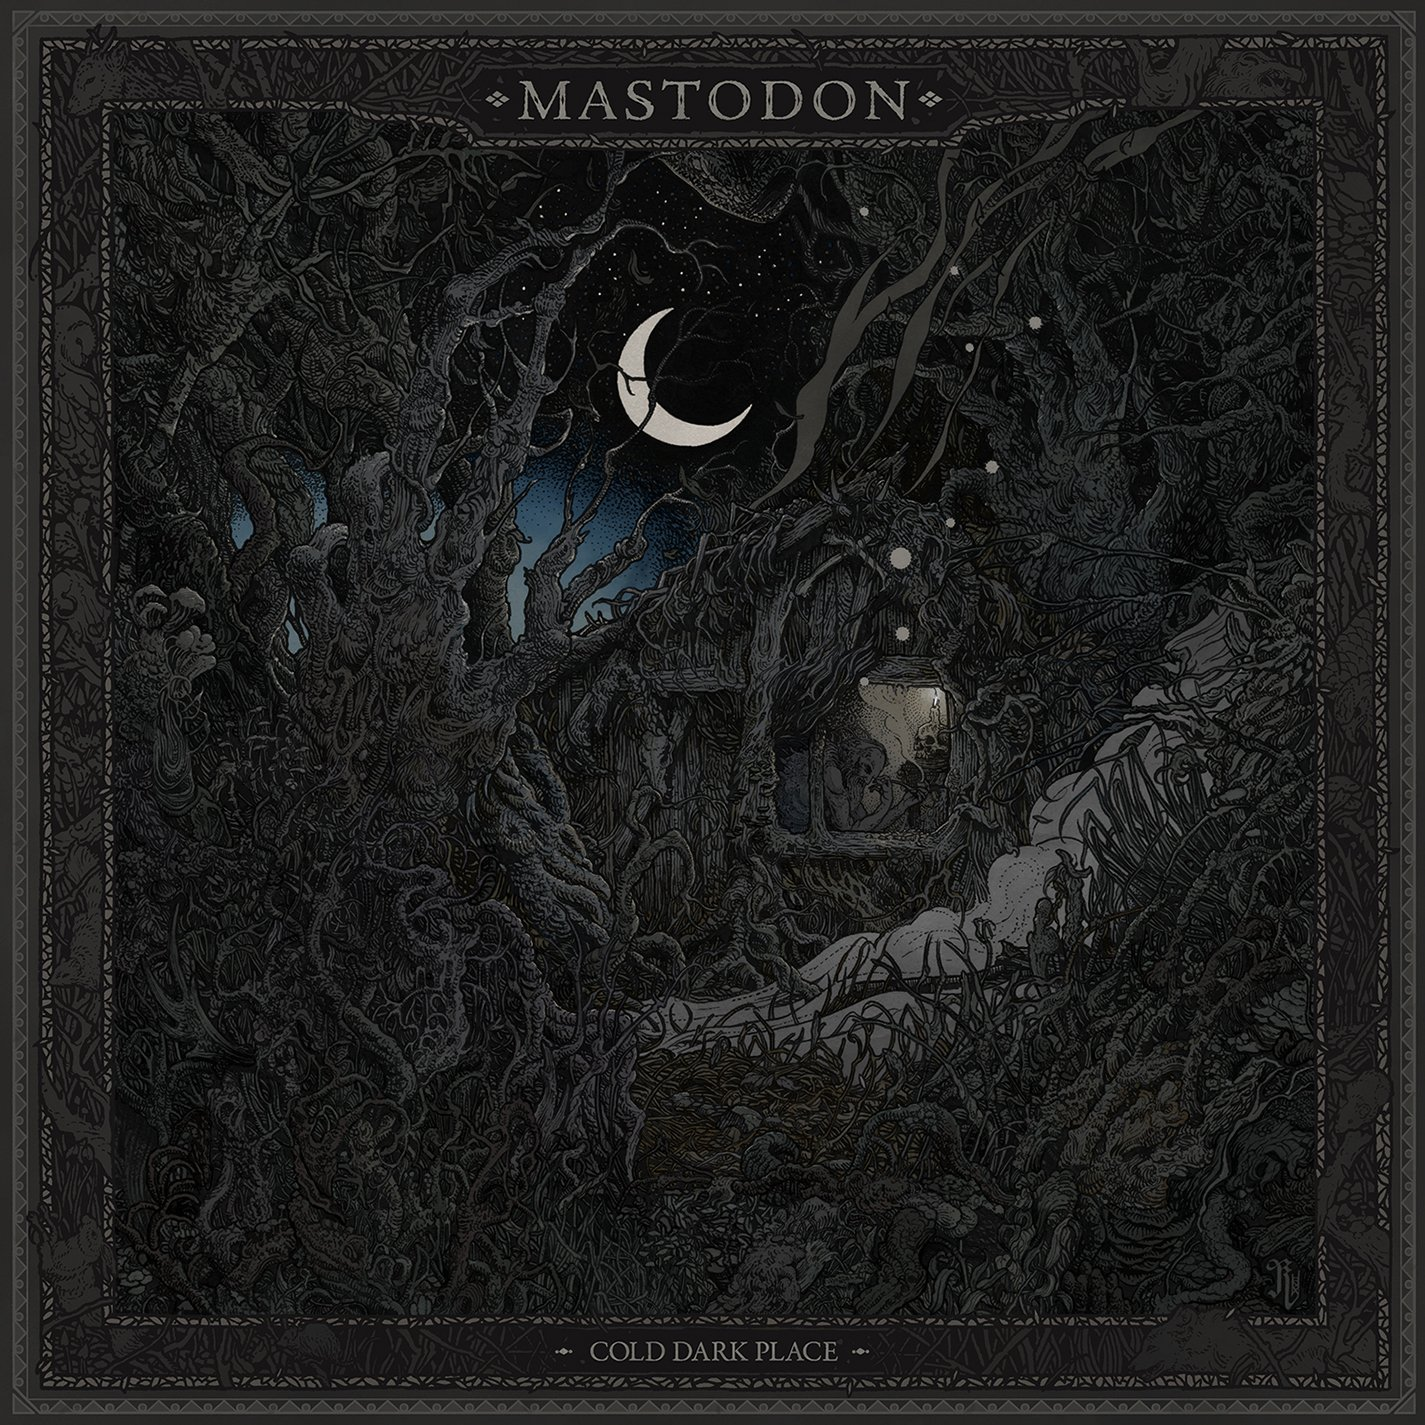 MASTODON-Cold-Dark-Place-Vinyl-LP-colored.jpg